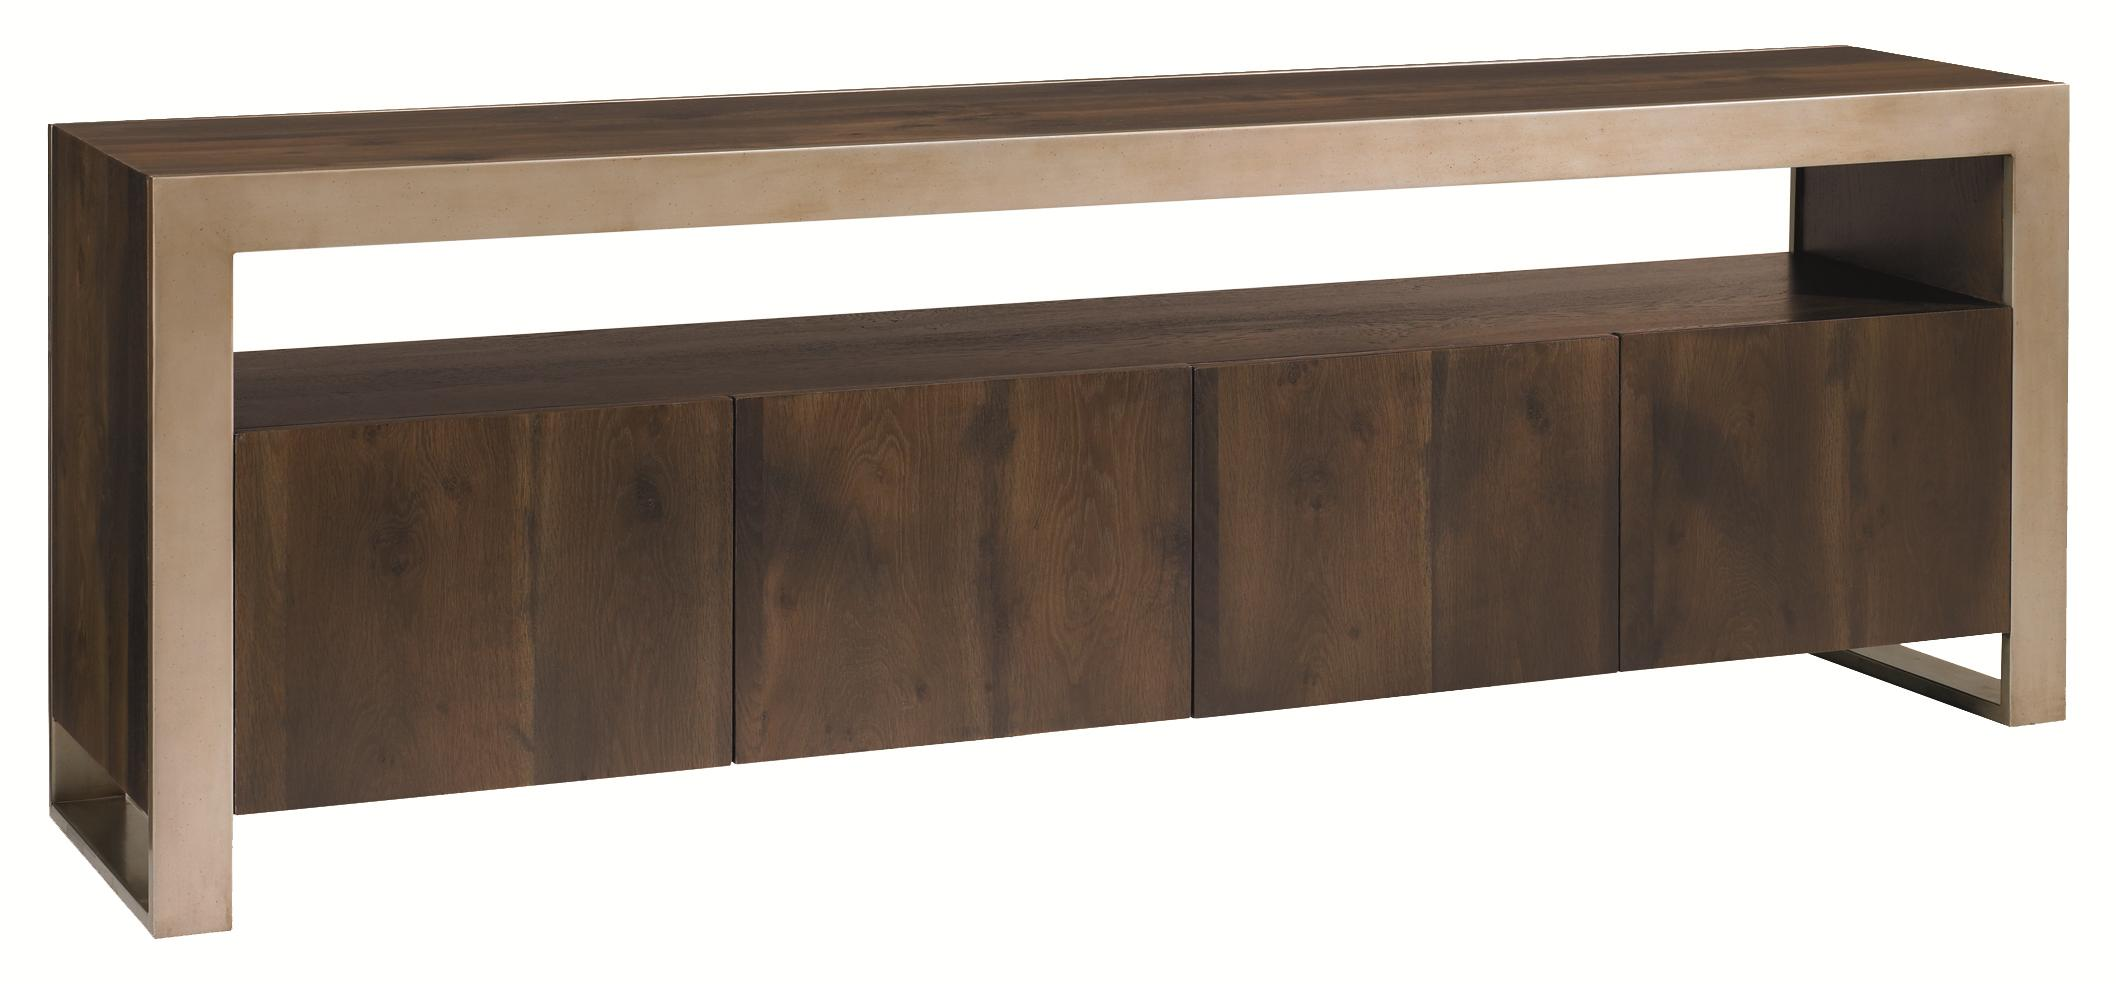 Schnadig Modern Artisan Ey Components TV Stand - Item Number: ATS-MEDIA-001